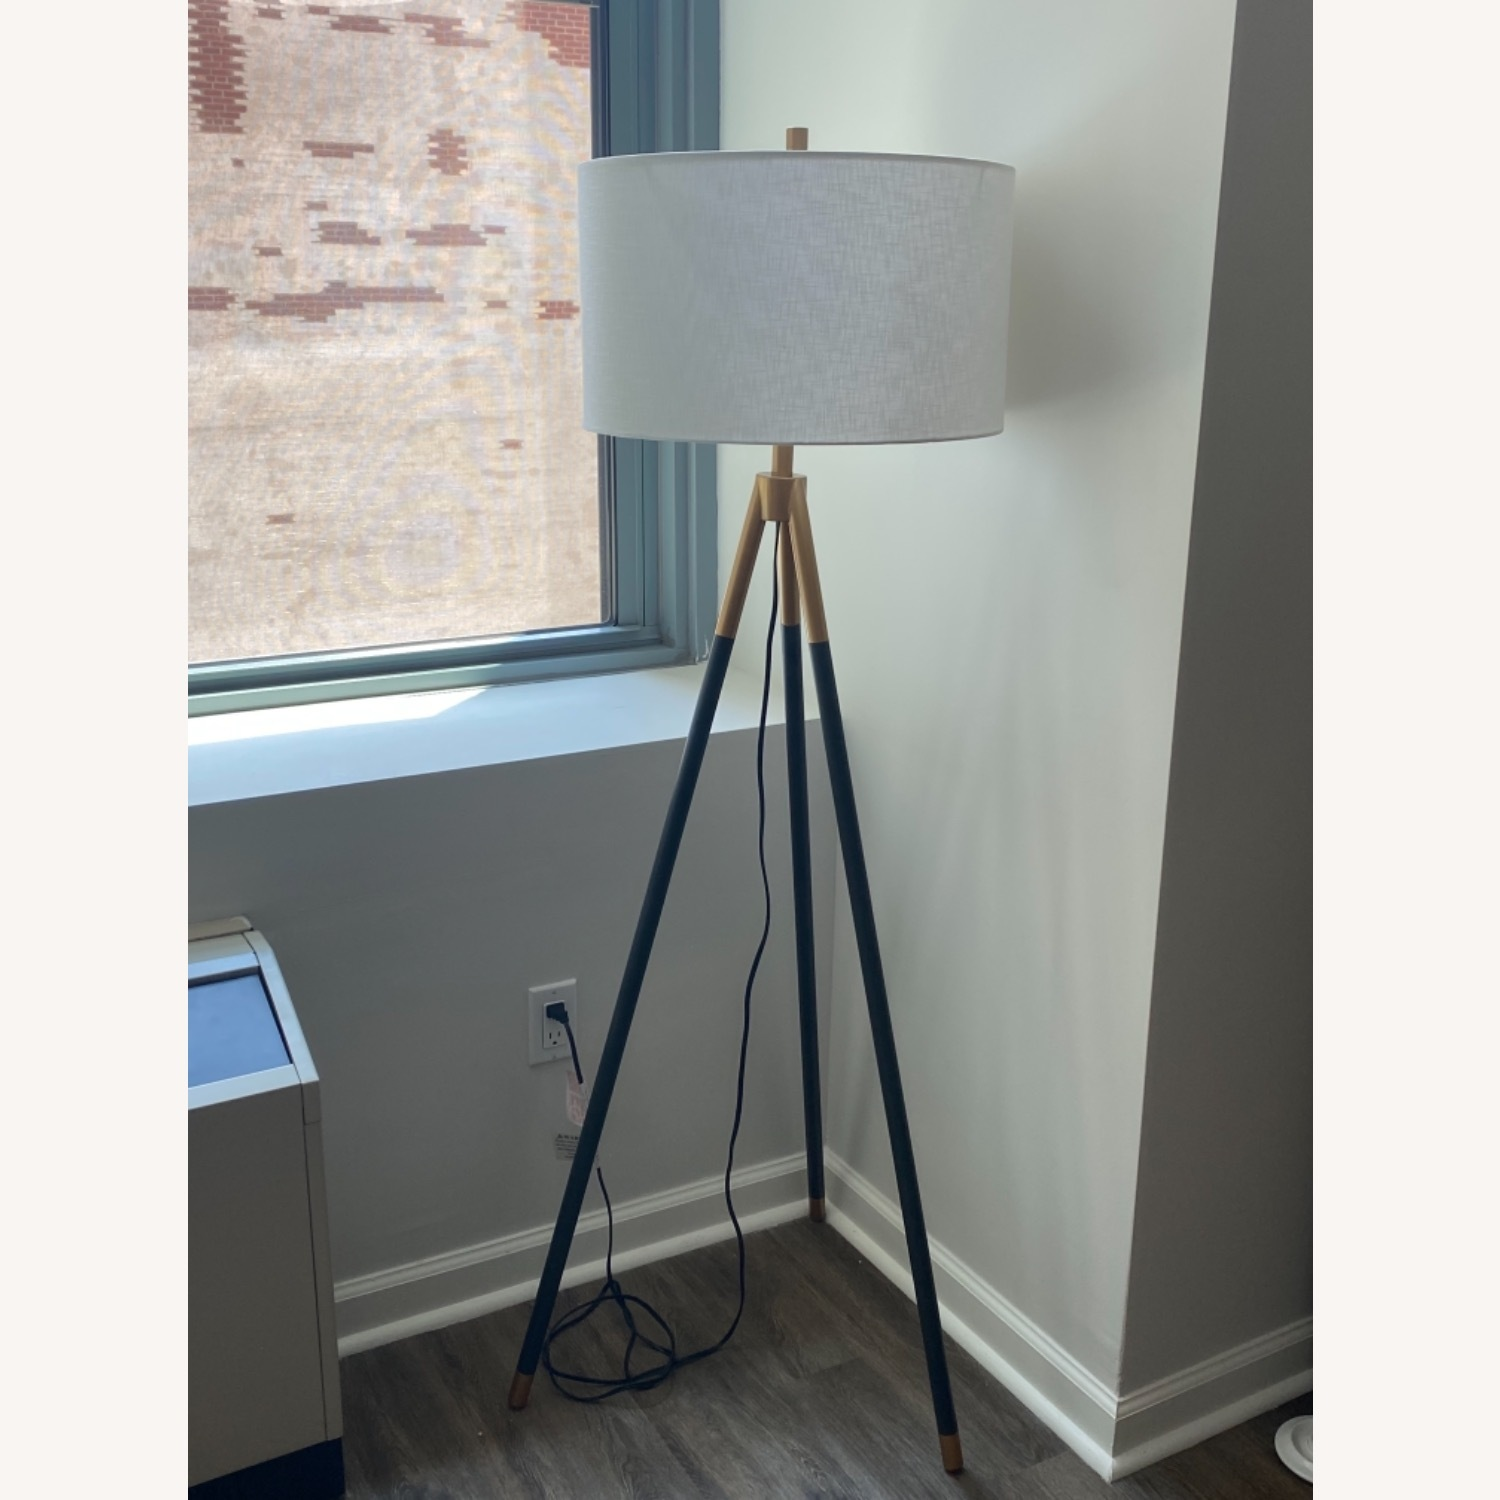 Rowe Furniture Black and Gold Tripod Floor Lamp - image-1